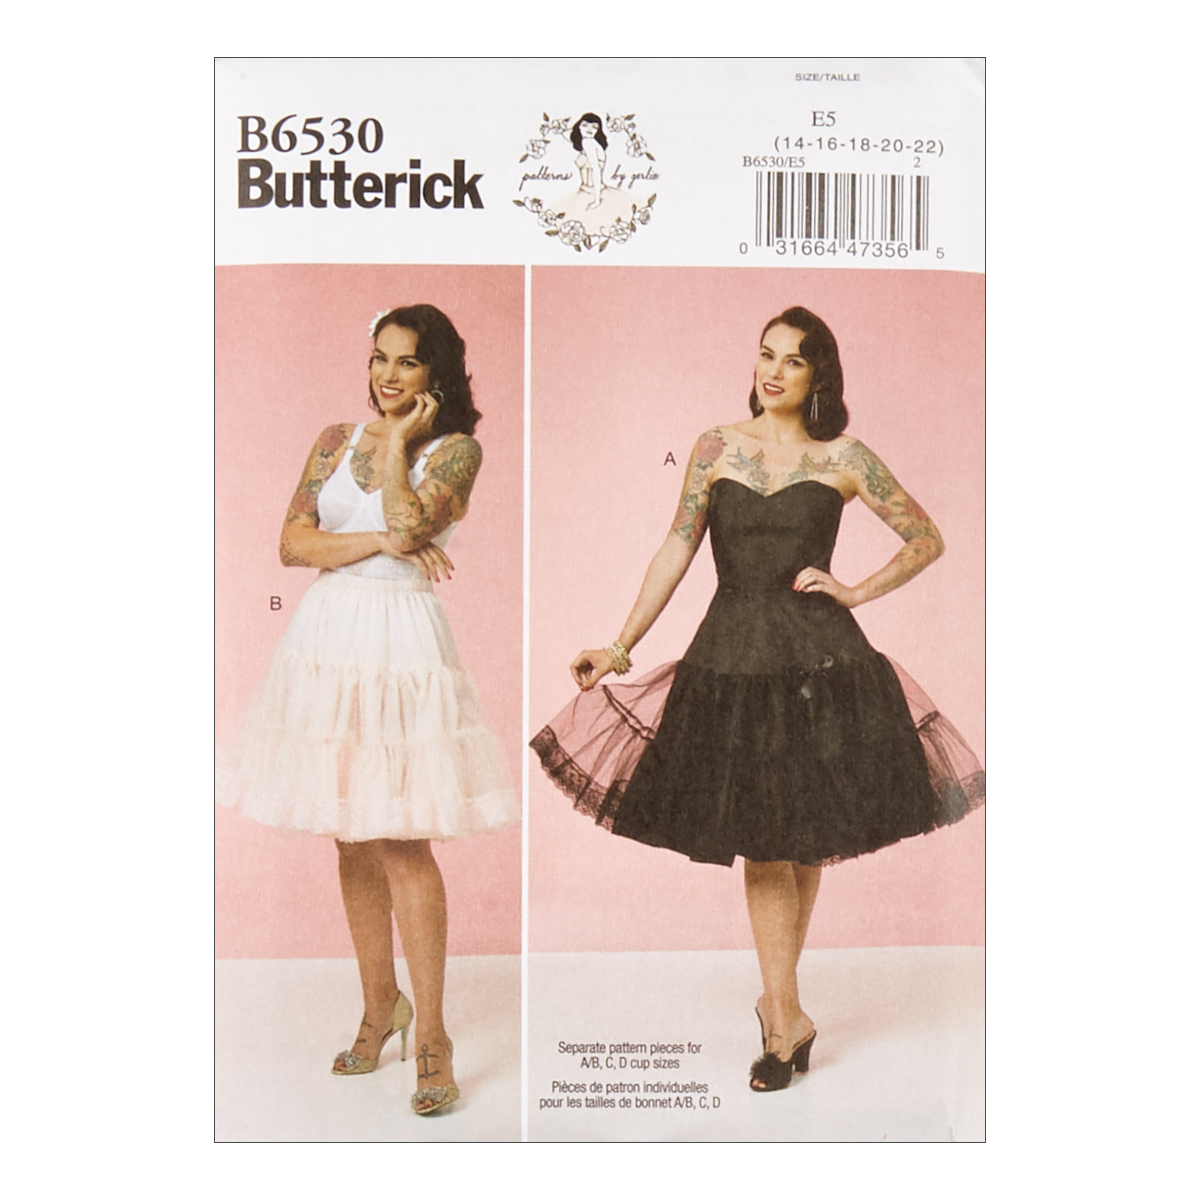 1950s Sewing Patterns | Dresses, Skirts, Tops, Mens Butterick B6530 Patterns by Gertie Misses Full Slip and Petticoat A5 Sizes 6-14 $11.97 AT vintagedancer.com